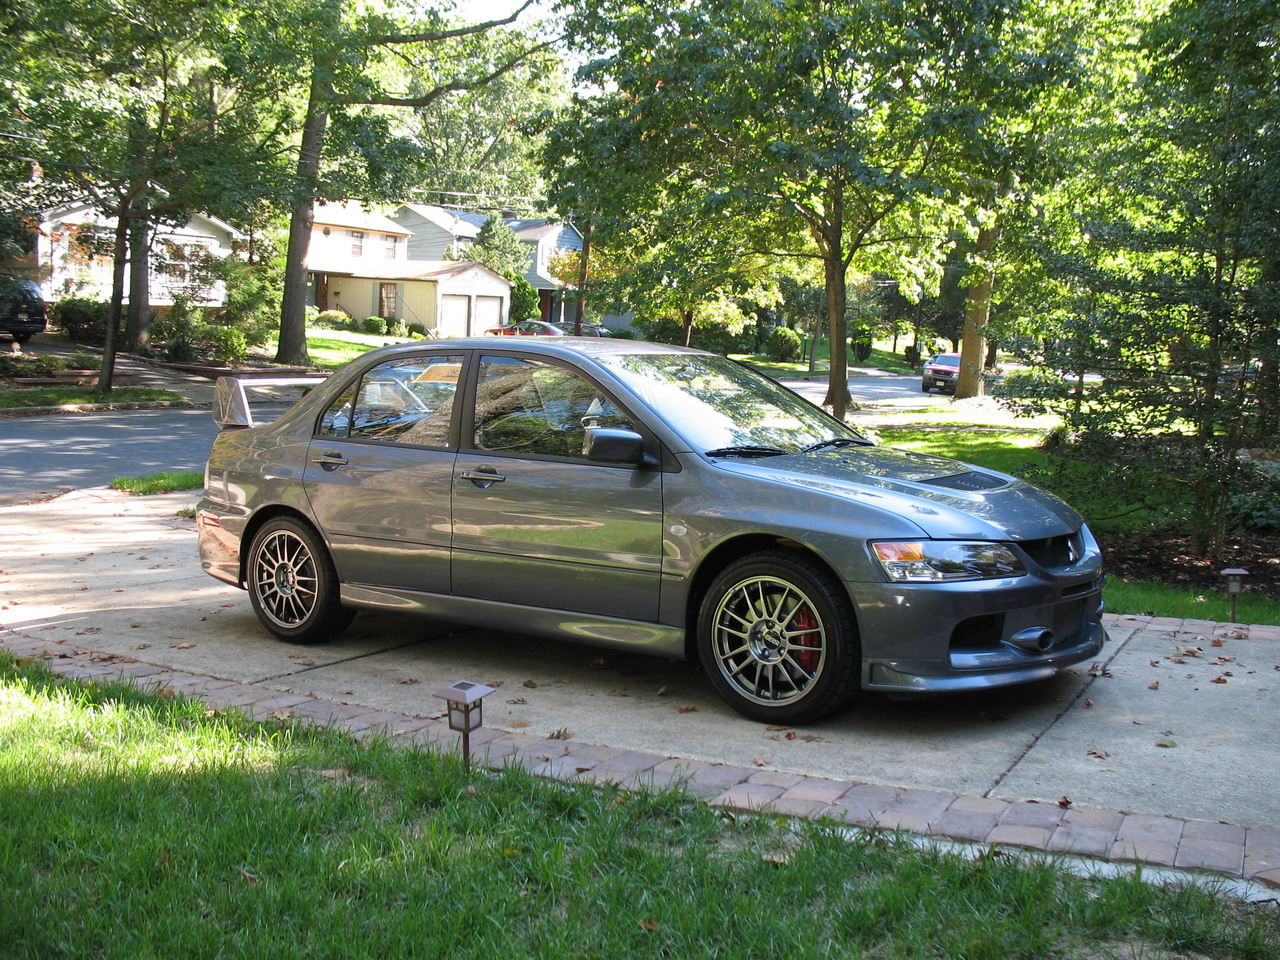 stock 2006 mitsubishi lancer evo mr 1/4 mile trap speeds 0-60